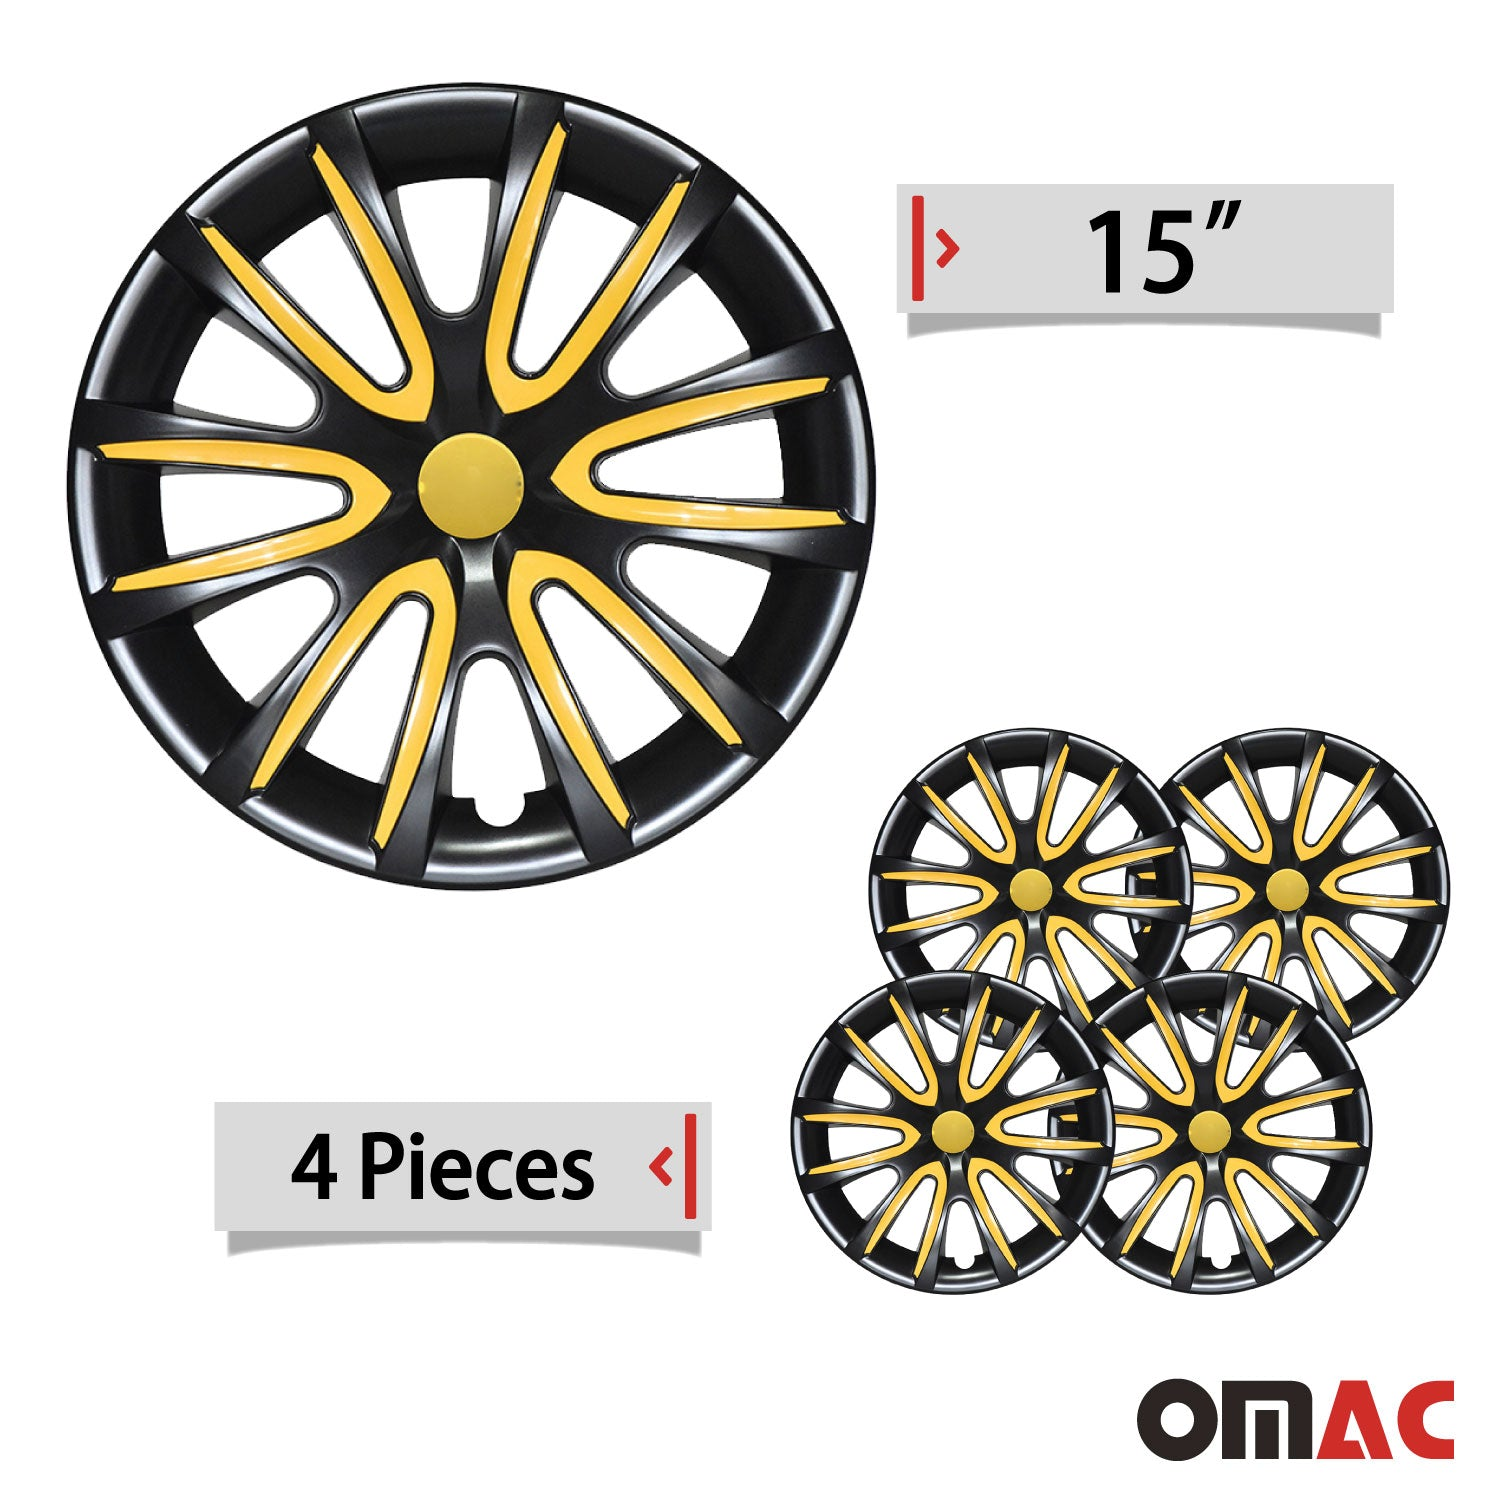 "15"" Inch Hubcaps Wheel Rim Cover Glossy Black with Yellow Insert 4pcs Set"